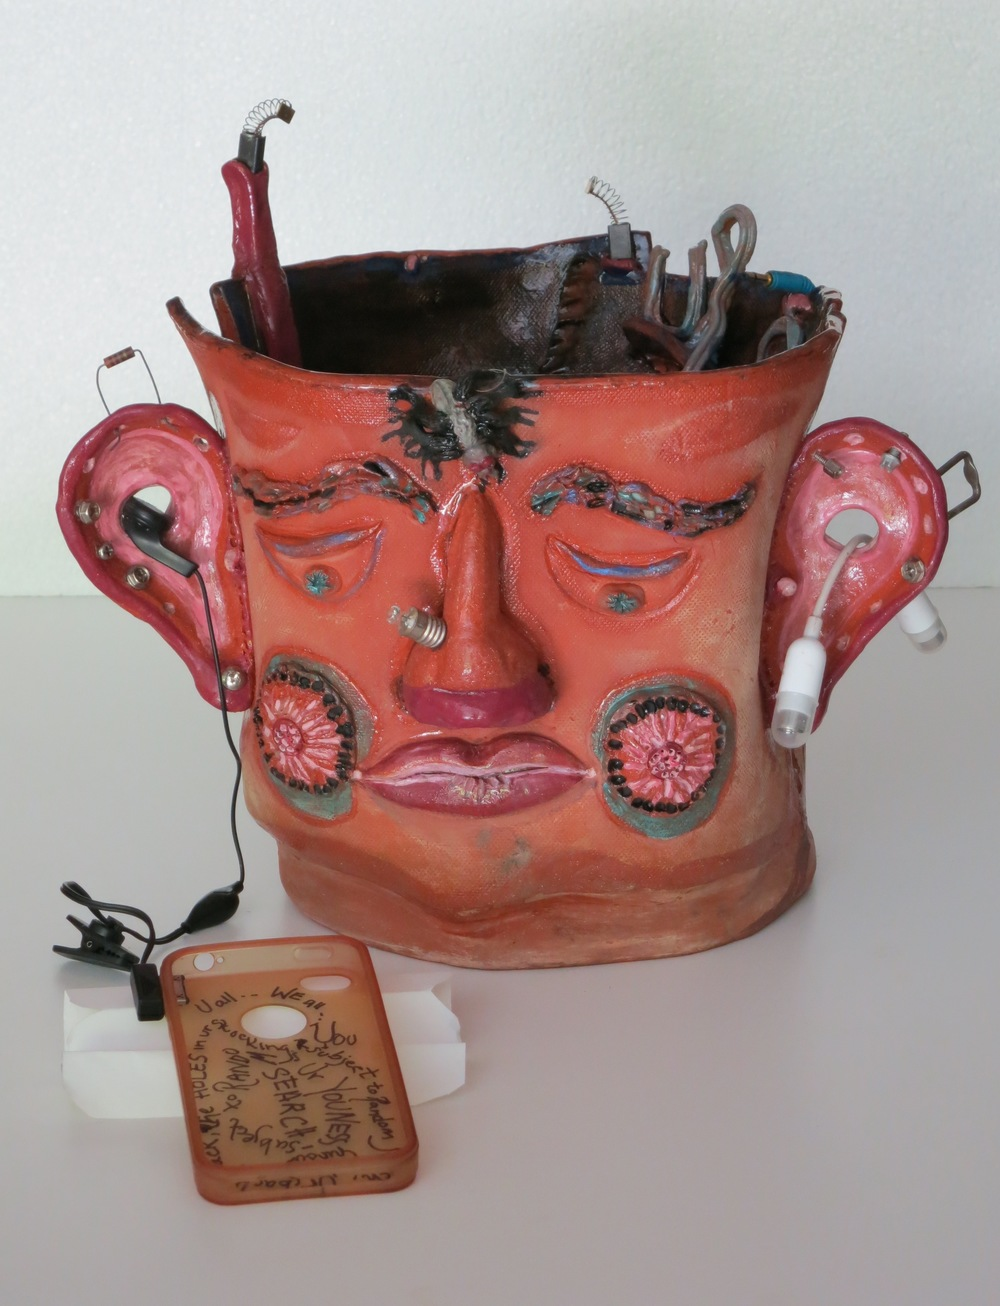 U R Subject to Random Search, mixed media earthenware, front view_1470.jpg